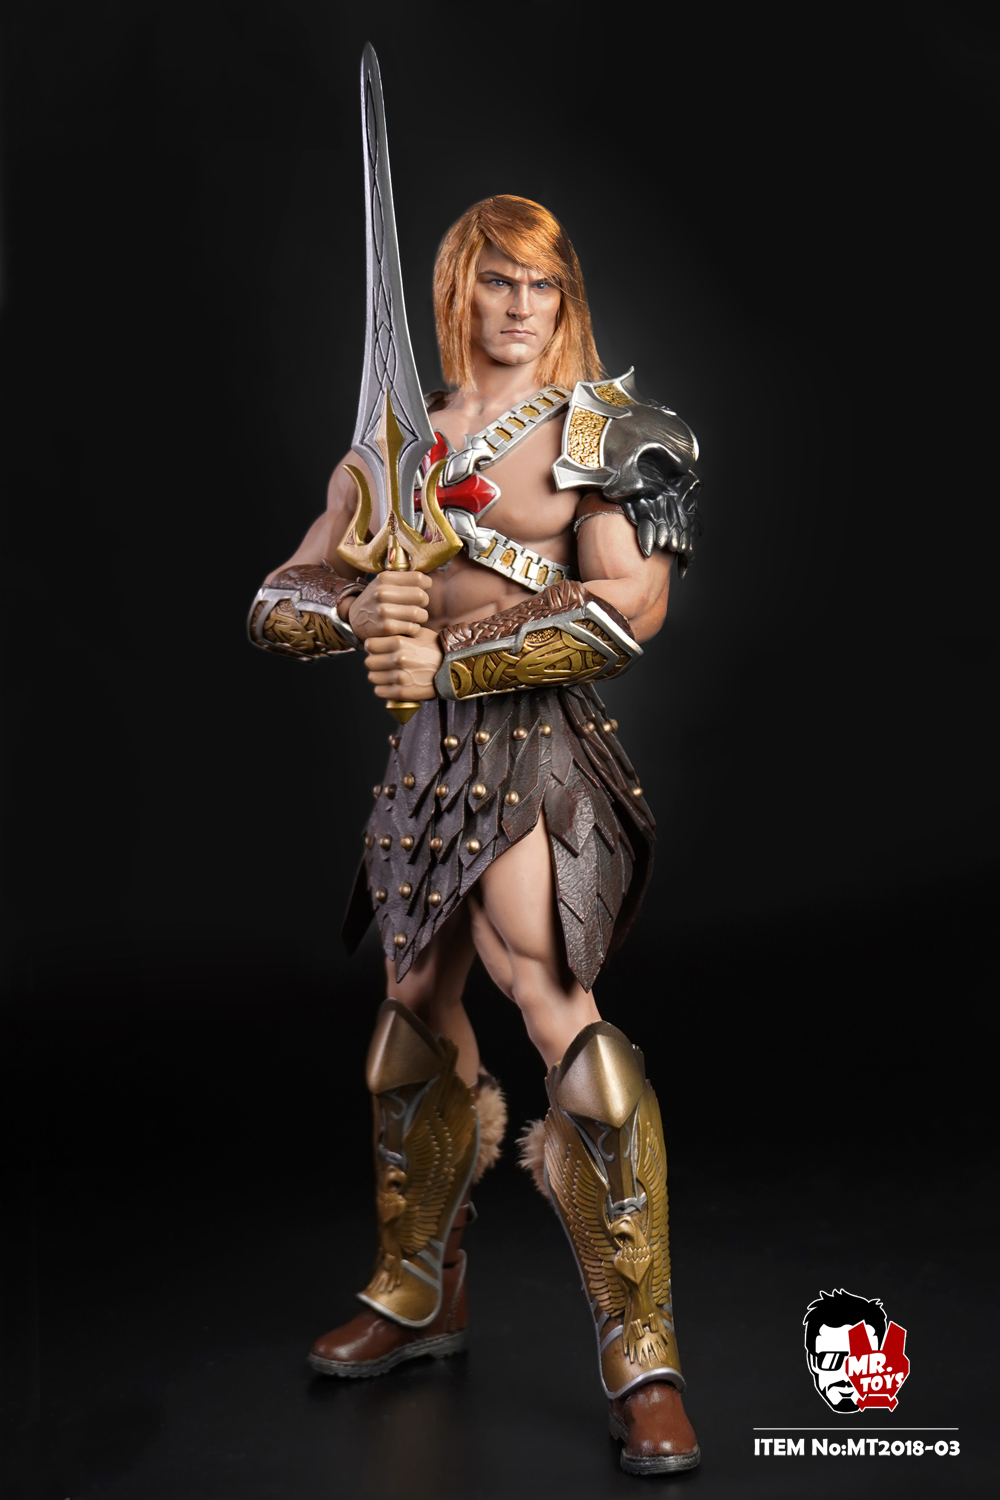 NEW PRODUCT: Mr. Toys MT2018-03 1/6 He-Man head carving costume set O1cn0128